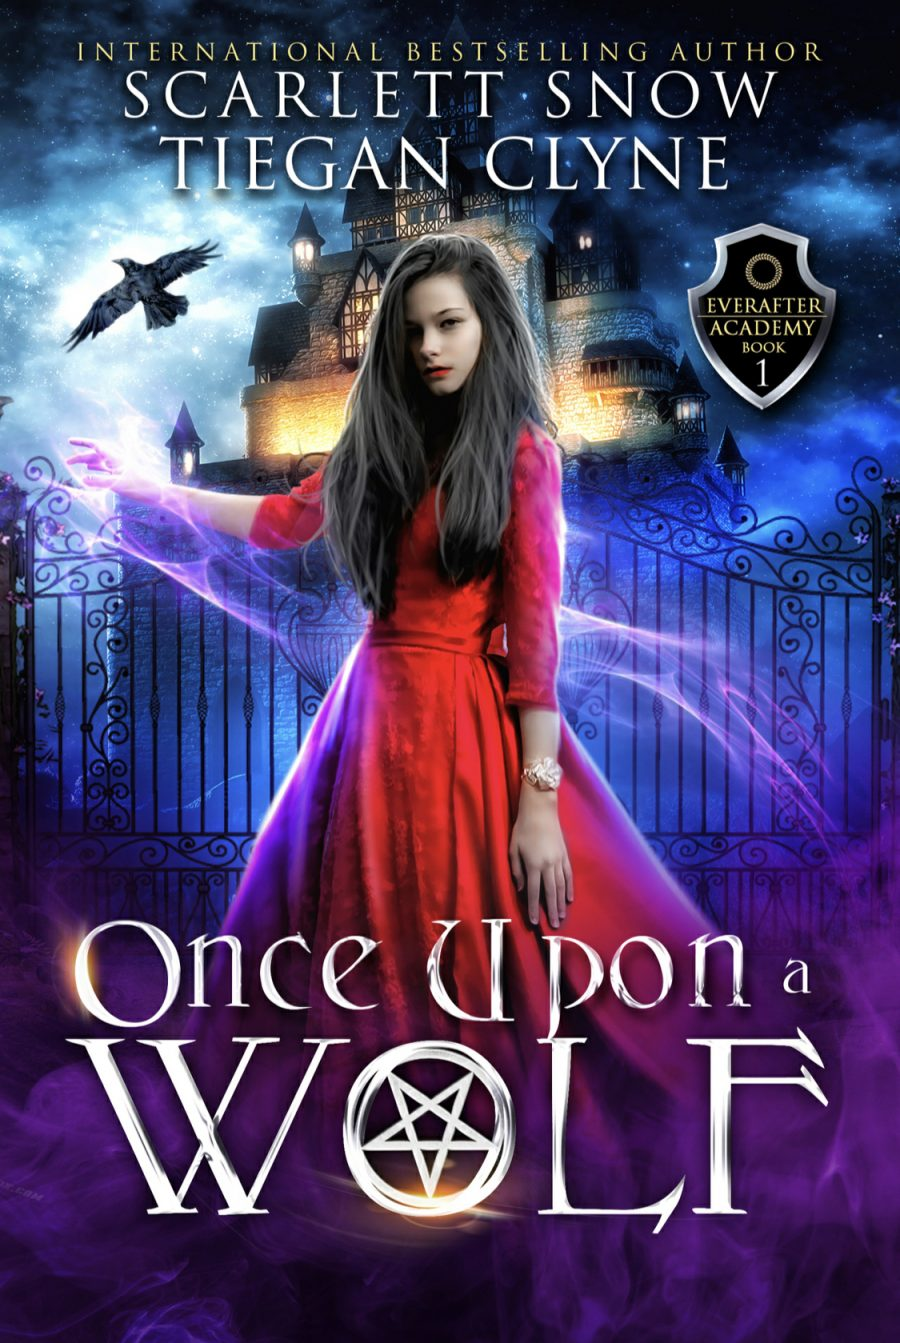 Once Upon A Wolf by Scarlett Snow & Tiegan Clyne - A Book Review #DarkRomance #Academy #Fantasy #RH #ReverseHarem #WhyChoose #4Stars #KindleUnlimited #KU